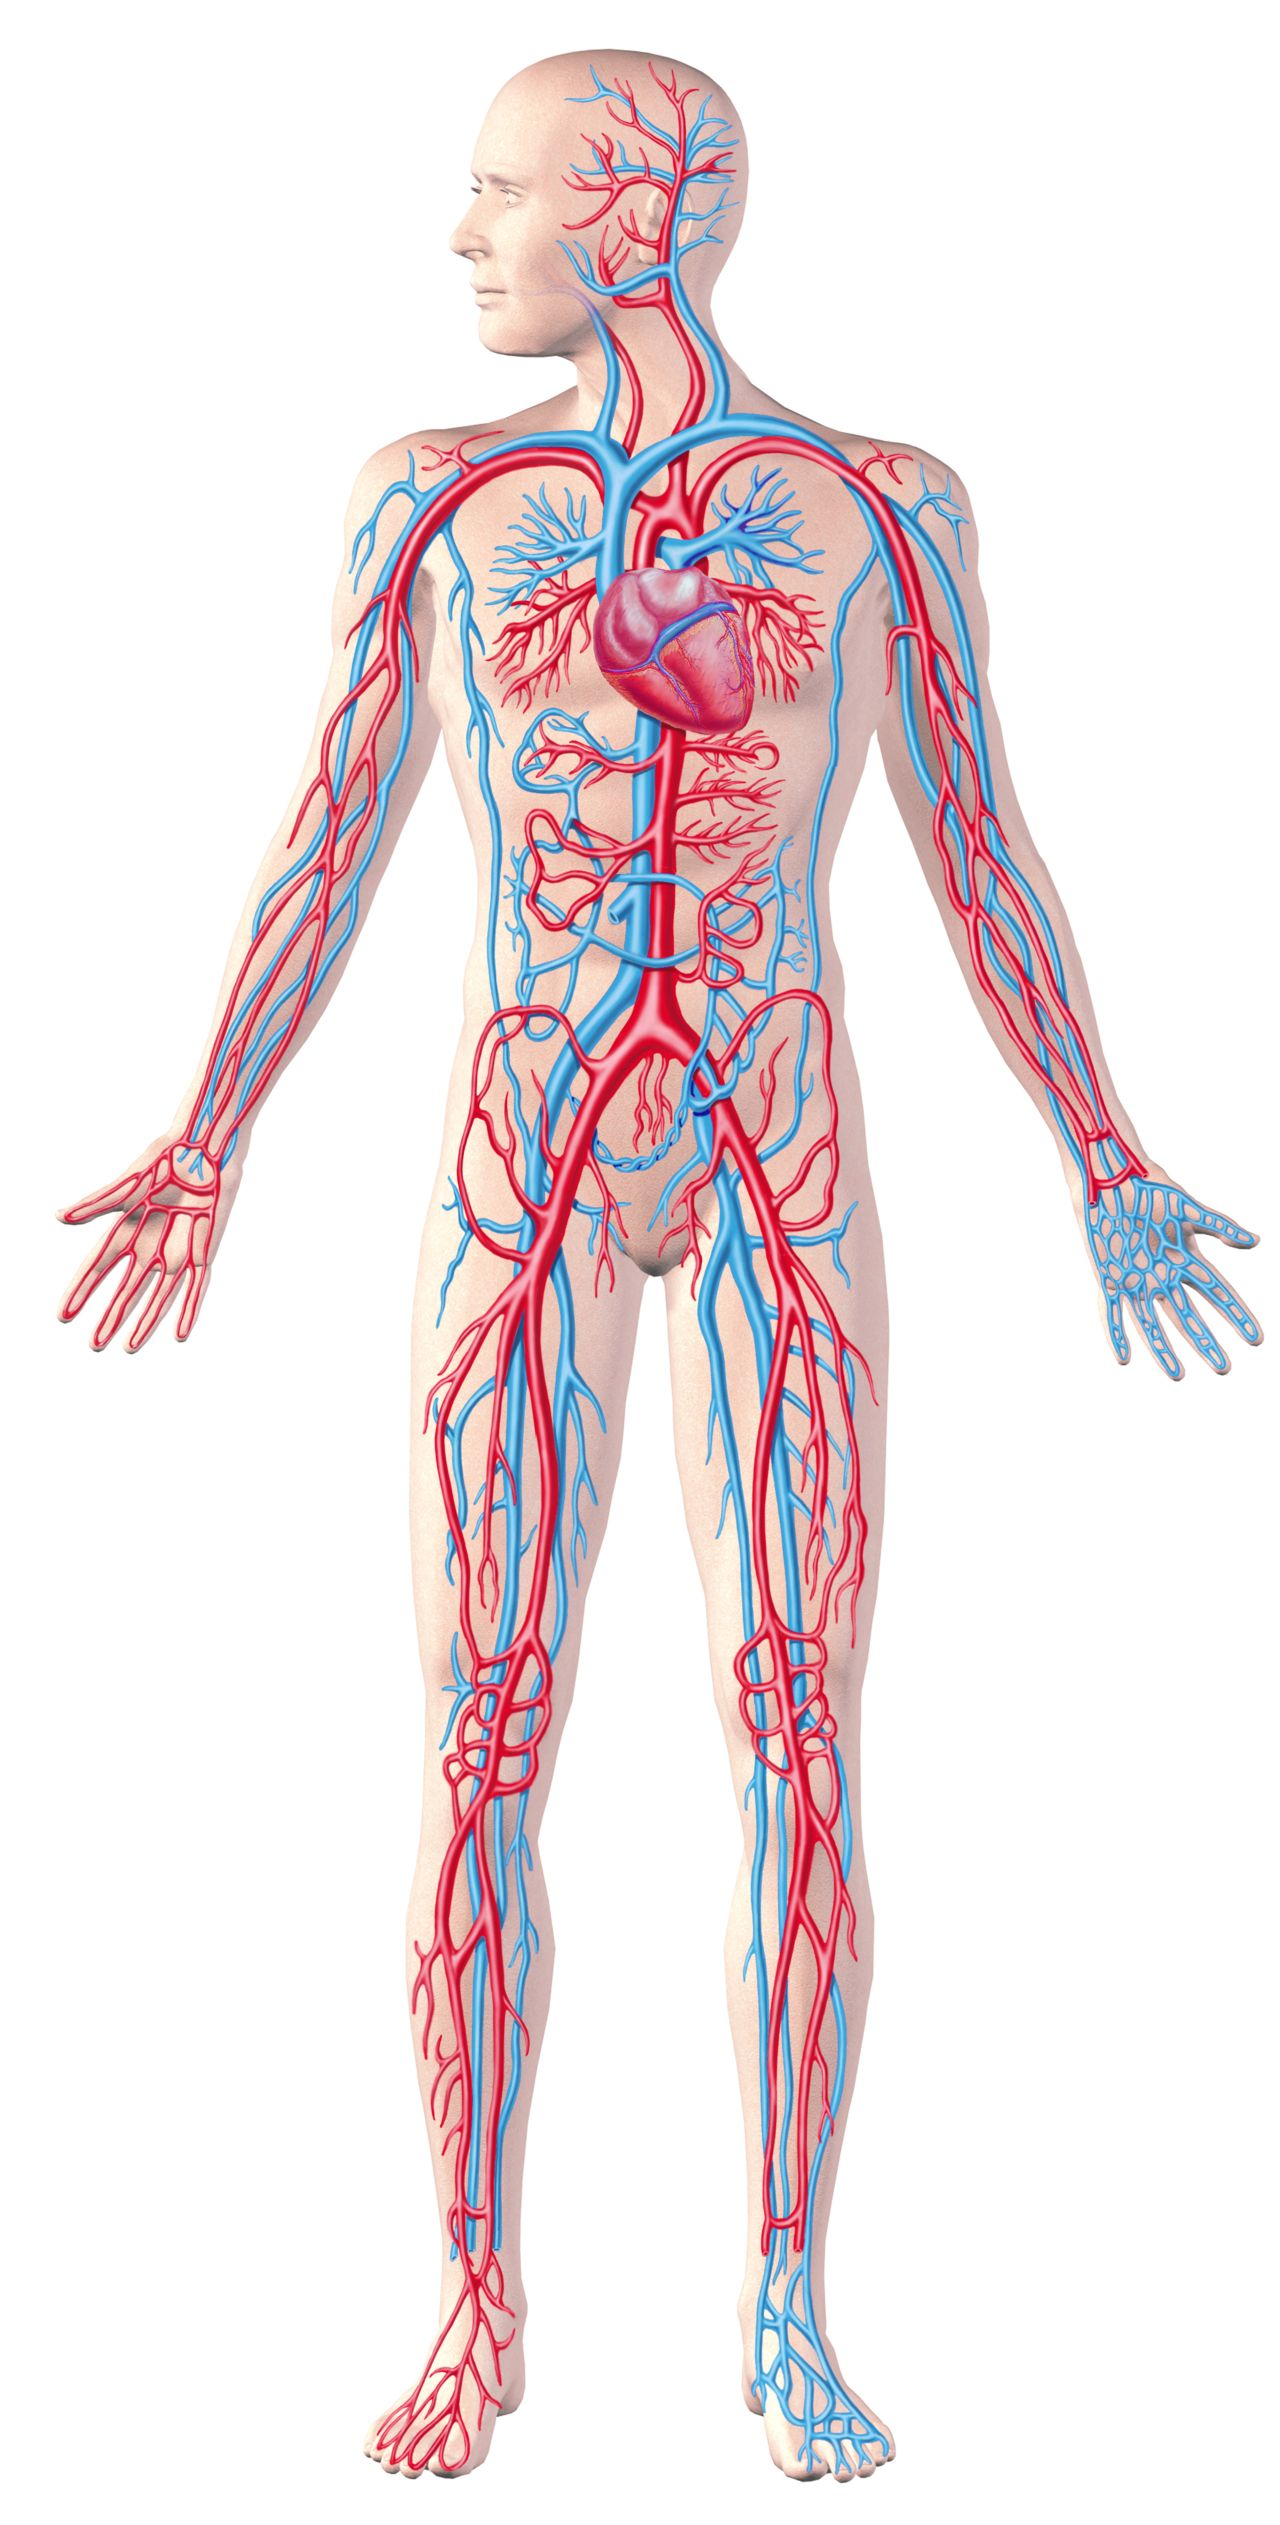 Graphic image of a human body circulatory system